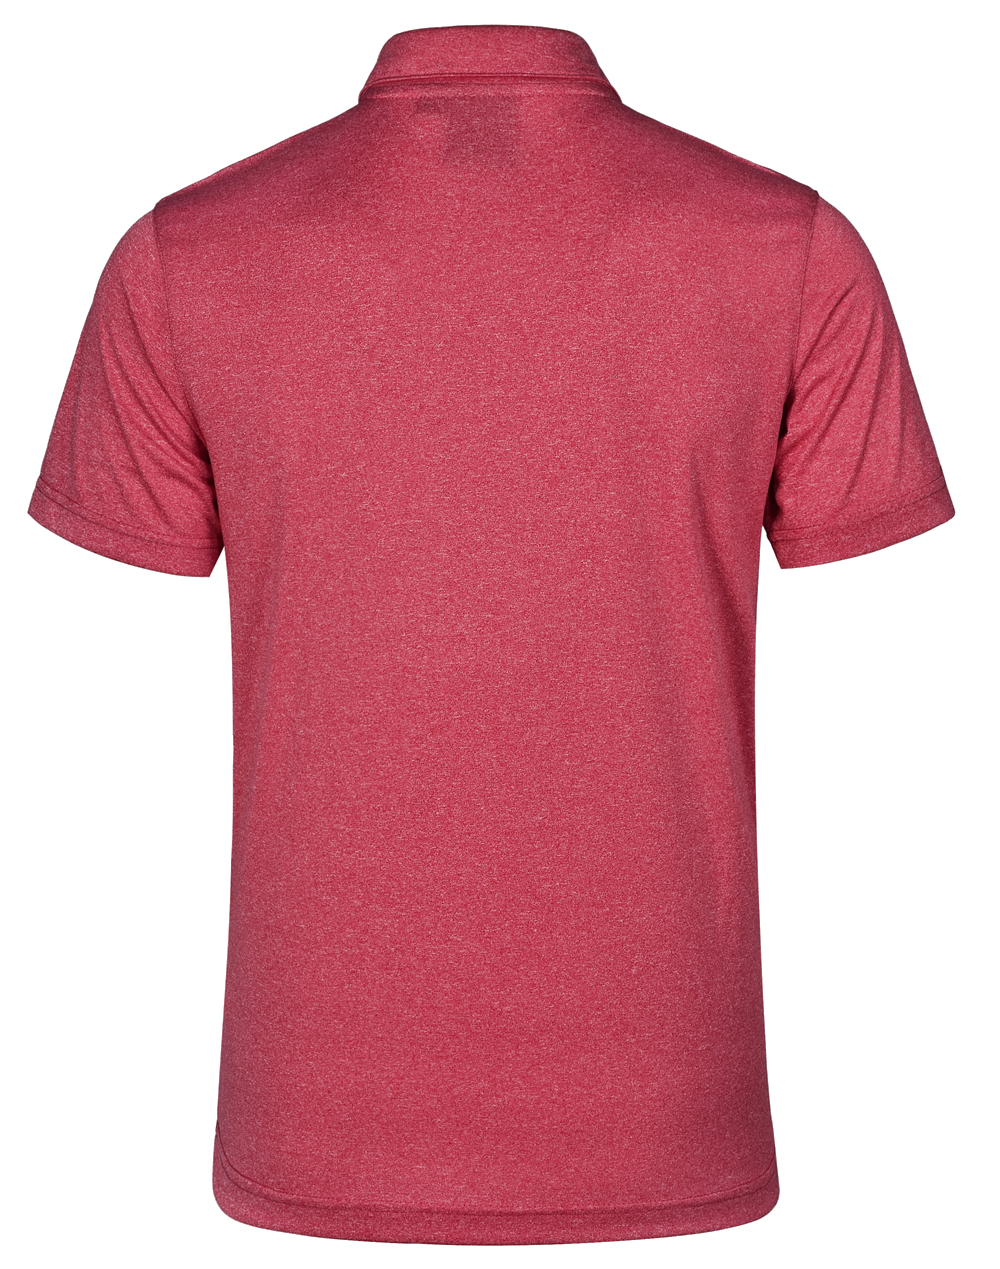 https://s3-ap-southeast-1.amazonaws.com/ws-imgs/POLOSHIRTS/PS85_Red_Back.jpg